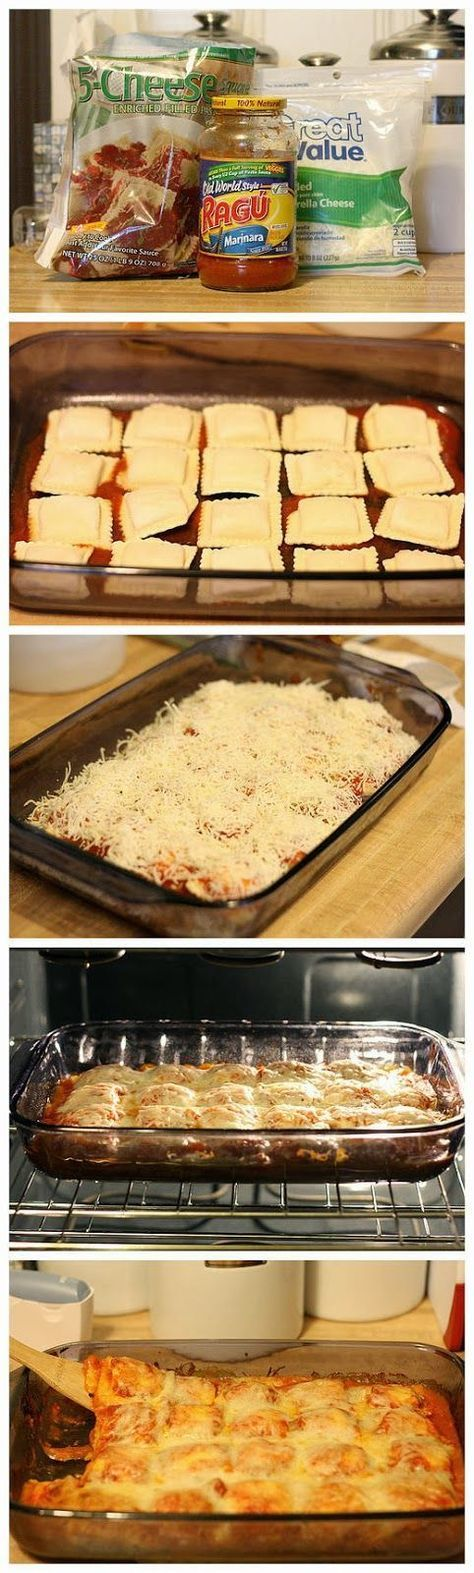 Baked Ravioli - 1 bag (25oz) Frozen Ravioli, 1 jar (26oz) Marinara, 2 cups Shredded Mozzarella, Parmesan for Sprinkling - Preheat oven 400°F. Spray 9x13 baking dish w/cooking spray. Spread 3/4 cup pasta sauce. Arrange half of frozen ravioli in single layer over sauce, top with half remaining pasta sauce.